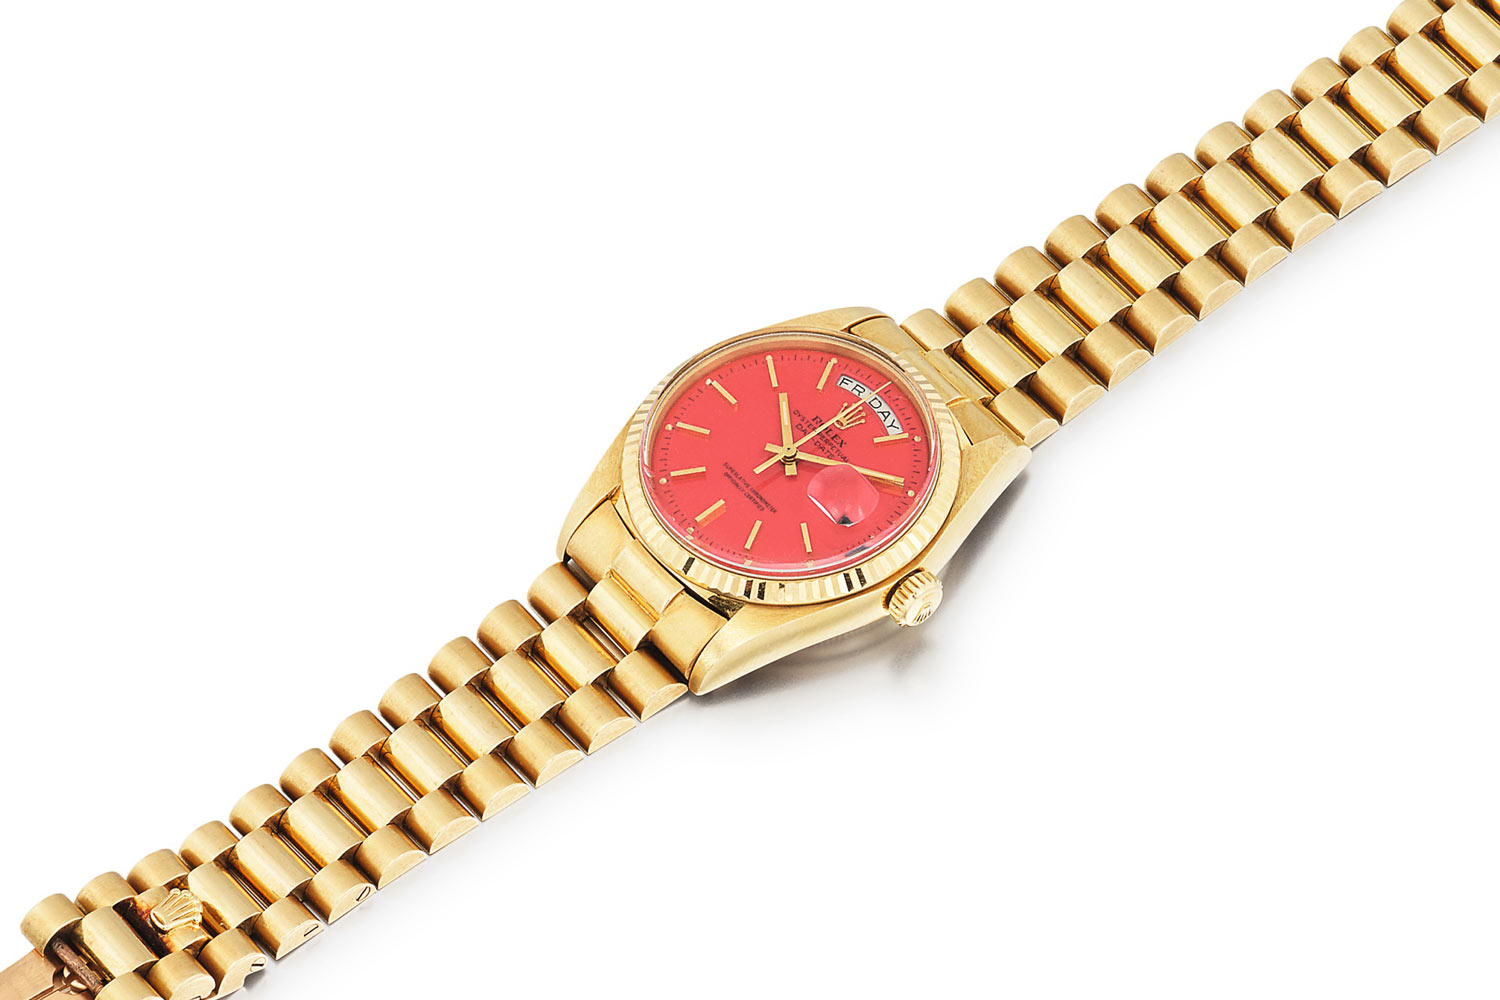 Lot 386: Rolex 'Stella' Day-Date Ref. 1803. Yellow gold wristwatch with day, date and red Stella dial, circa 1975